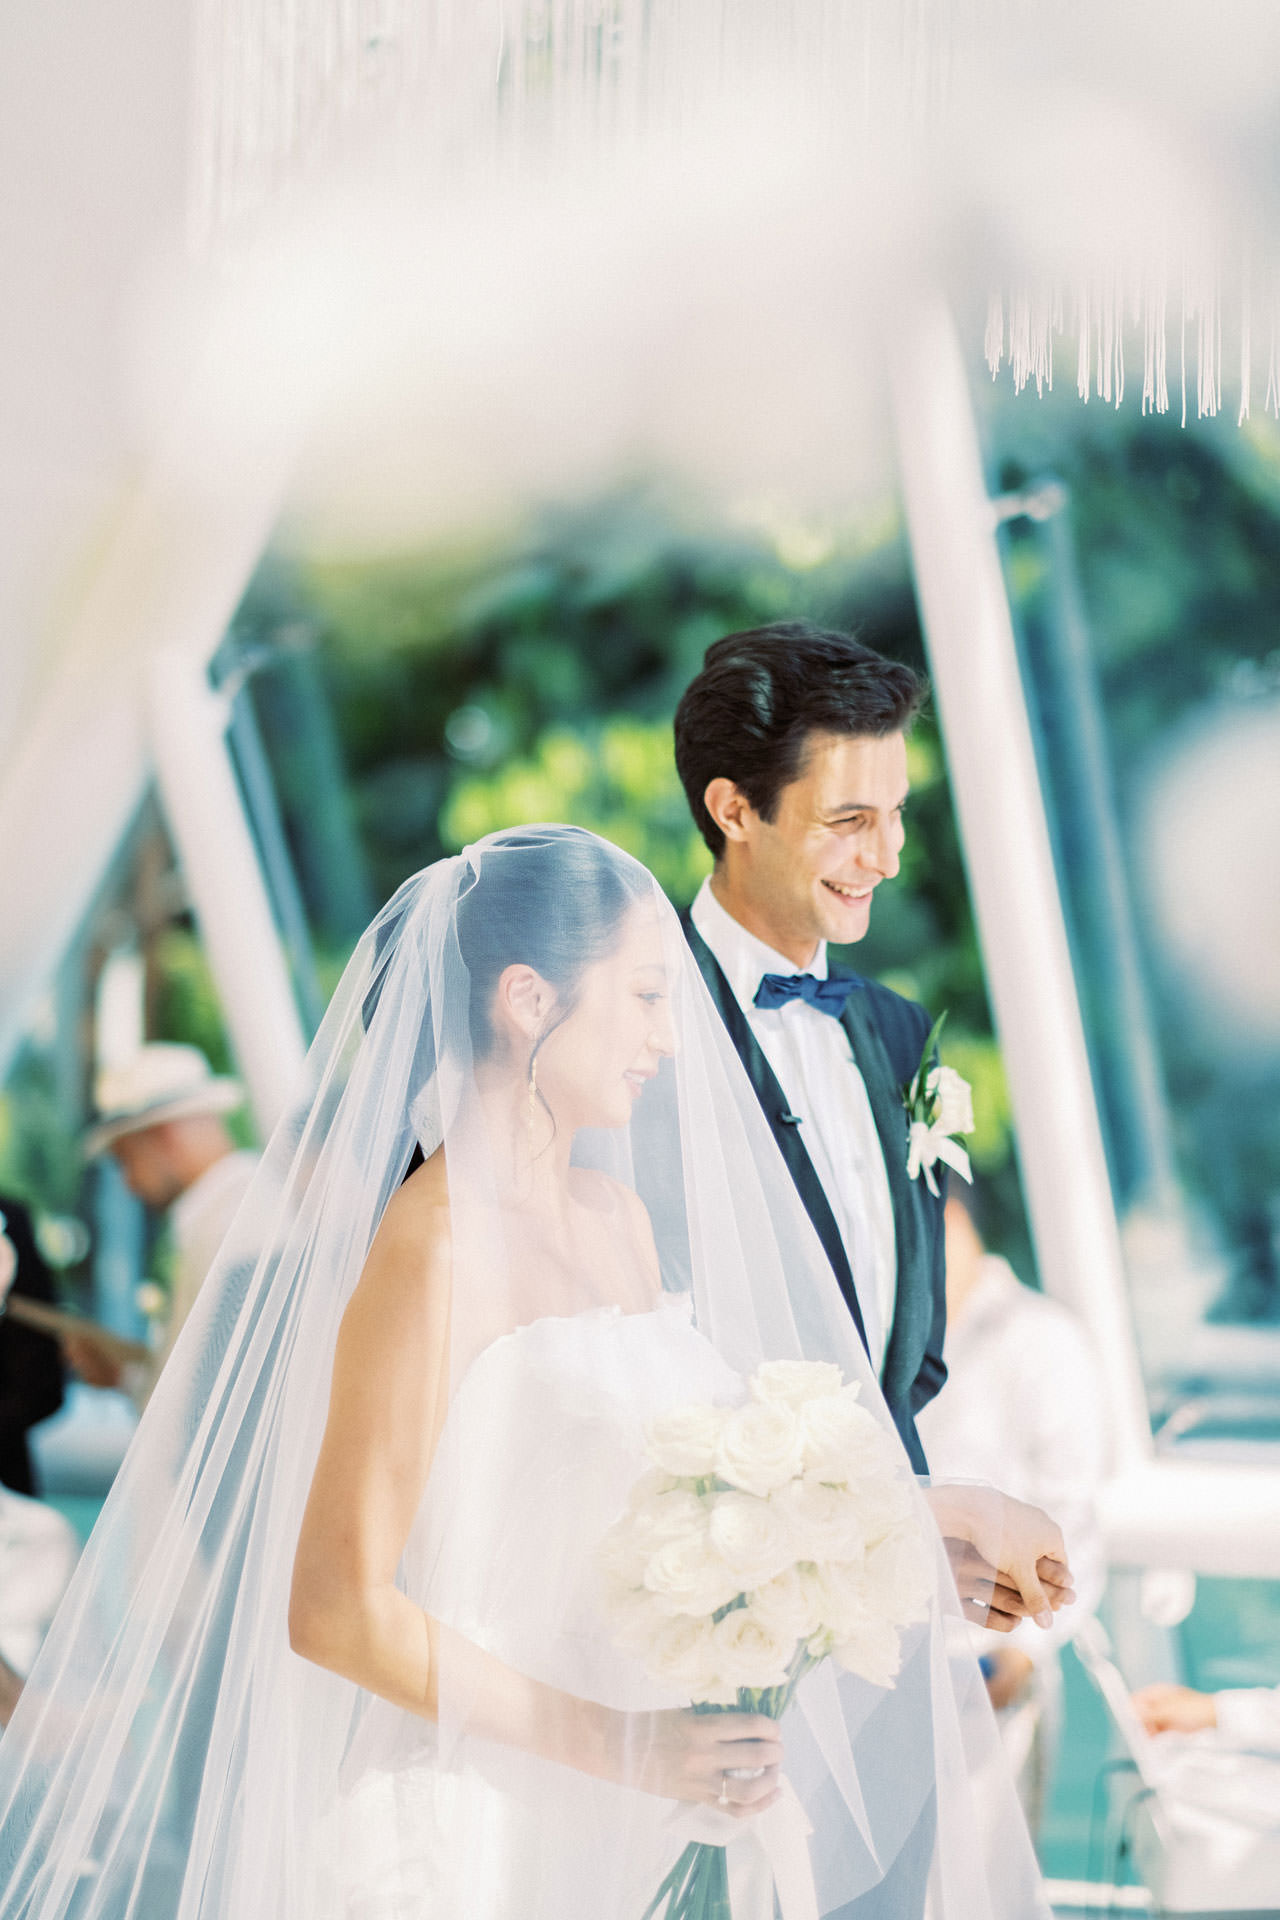 Tirtha Uluwatu Wedding with Reception at The Glass House Bali 16